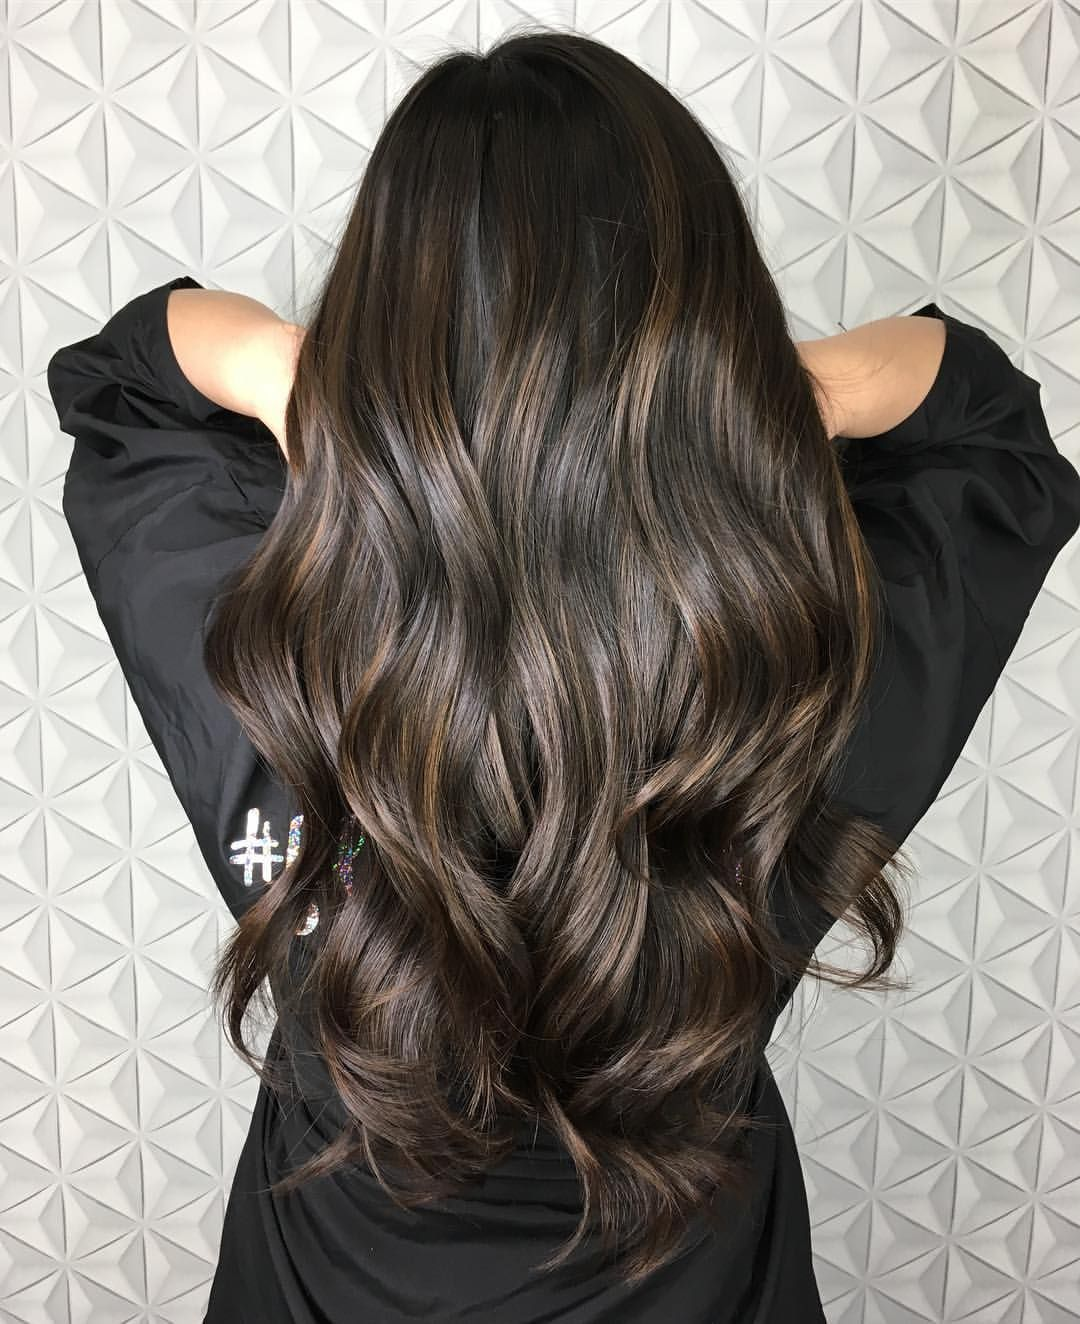 "Seattle Balayage Hairstylist on Instagram: ""Ash brown is seriously my favorite color to do! I just love how effortless it looks with dark hair. Kelsey came in wanting a Balayage but…"" #ashbrown Ash brown is seriously my favorite color to do! I just love how effortless it looks with dark hair. Kelsey came in wanting a Balayage but had her guard up because of her previous botched sessions. She didn't want her Balayage to come up too high and also no face framing. Although I wanted to give"